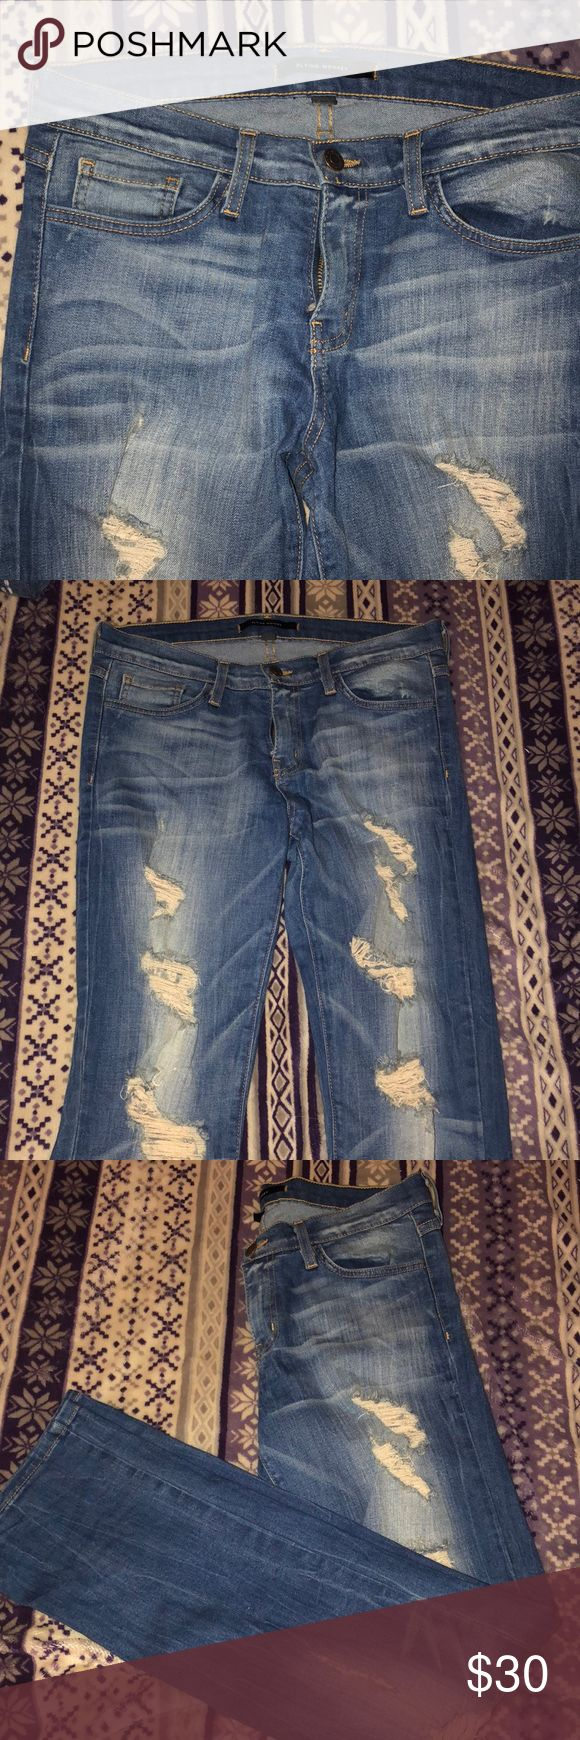 Flying Monkey jeans Distressed bootcut/flare jeans. They have a really fun medium wash. Super flattering- mix between a straight and a bootcut. flying monkey Jeans Boot Cut